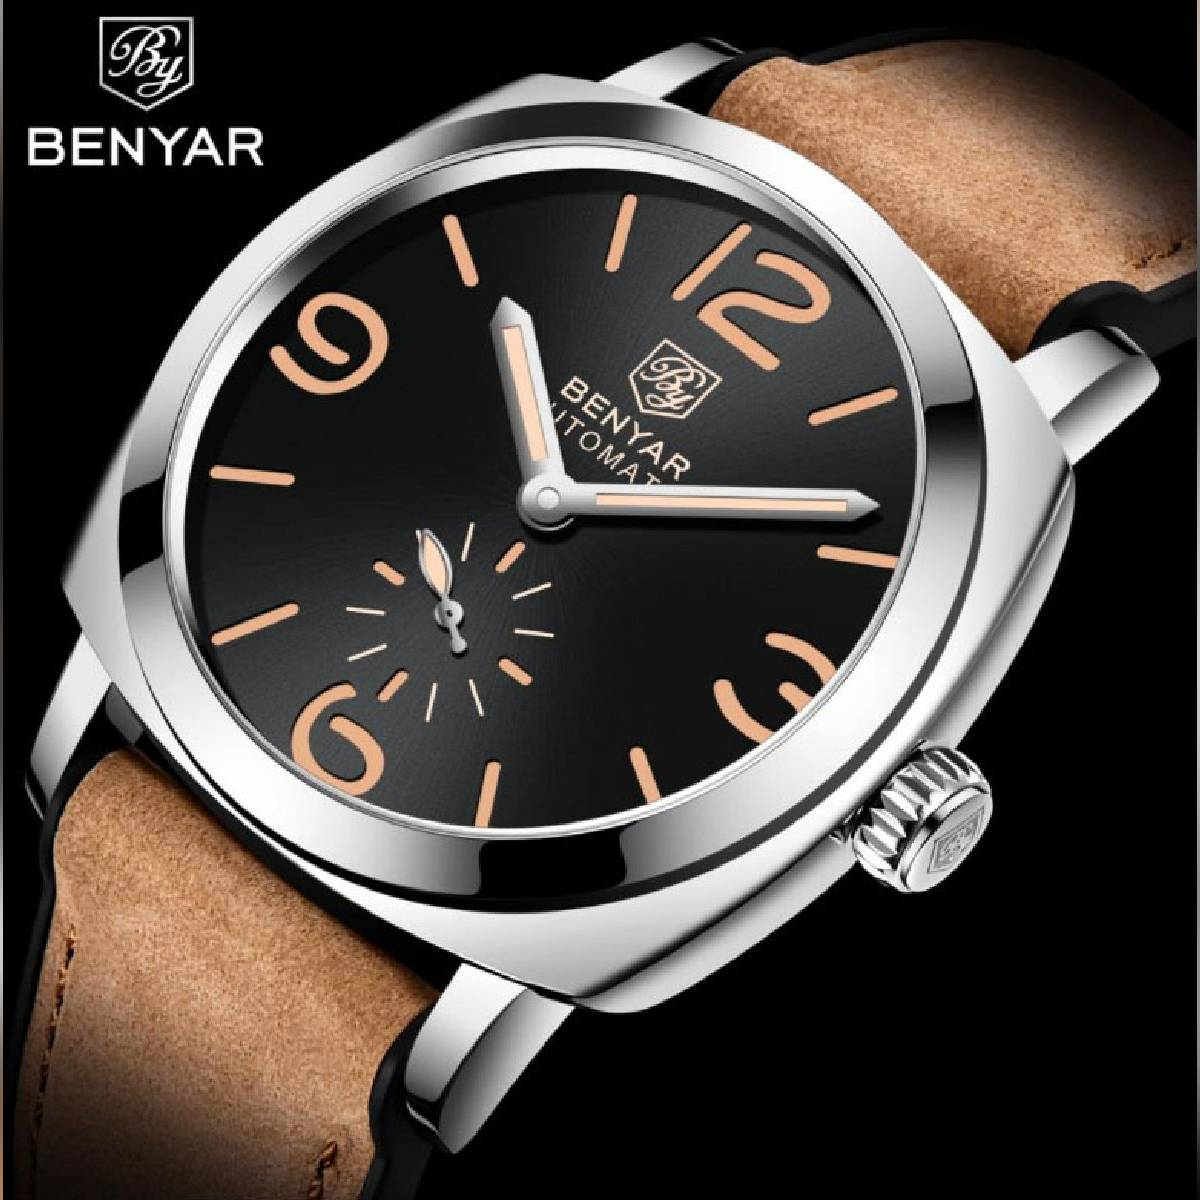 BENYAR 2020 Luxury Automatic Mechanical Leather Strap Watch For Men - BY5174